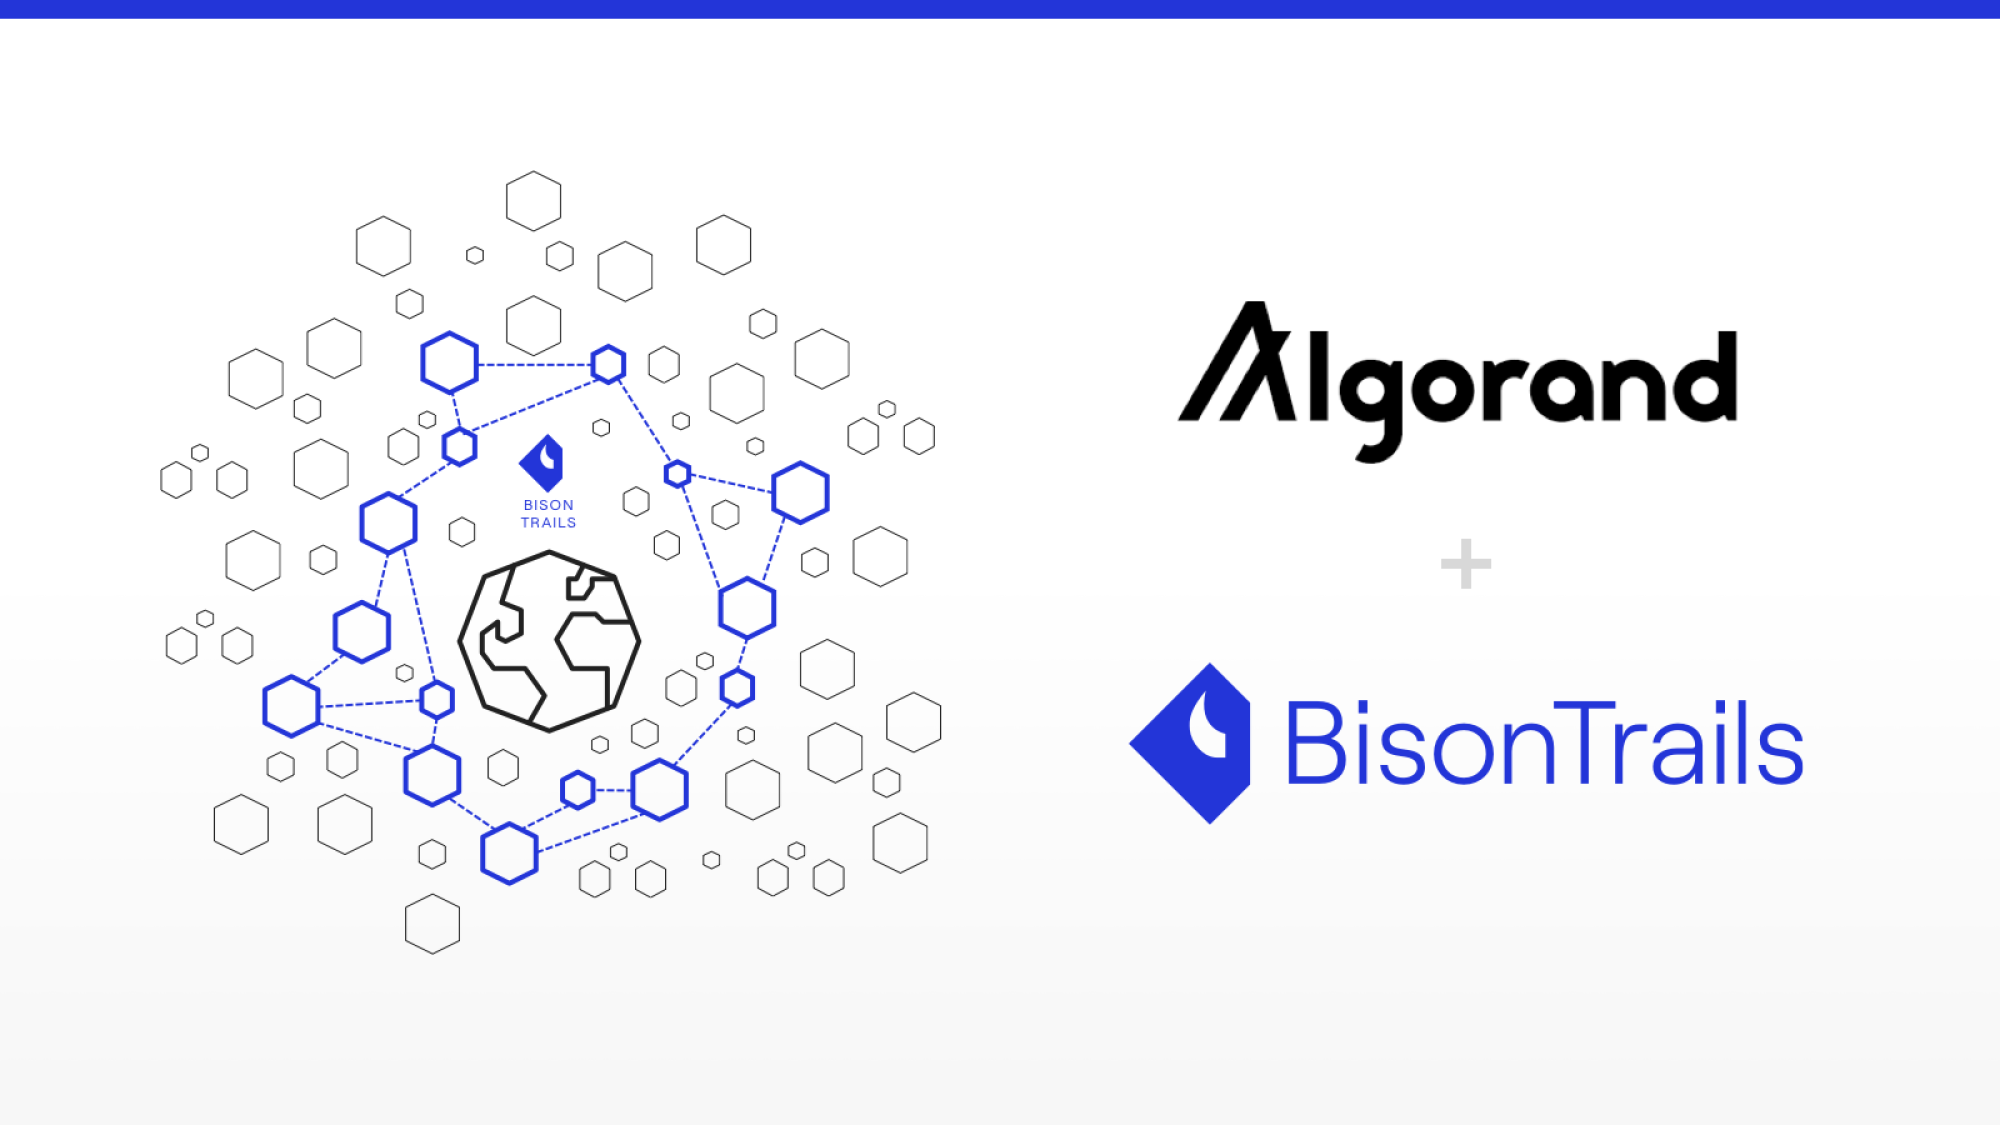 Bison Trails is Supporting Algorand's Mainnet Launch